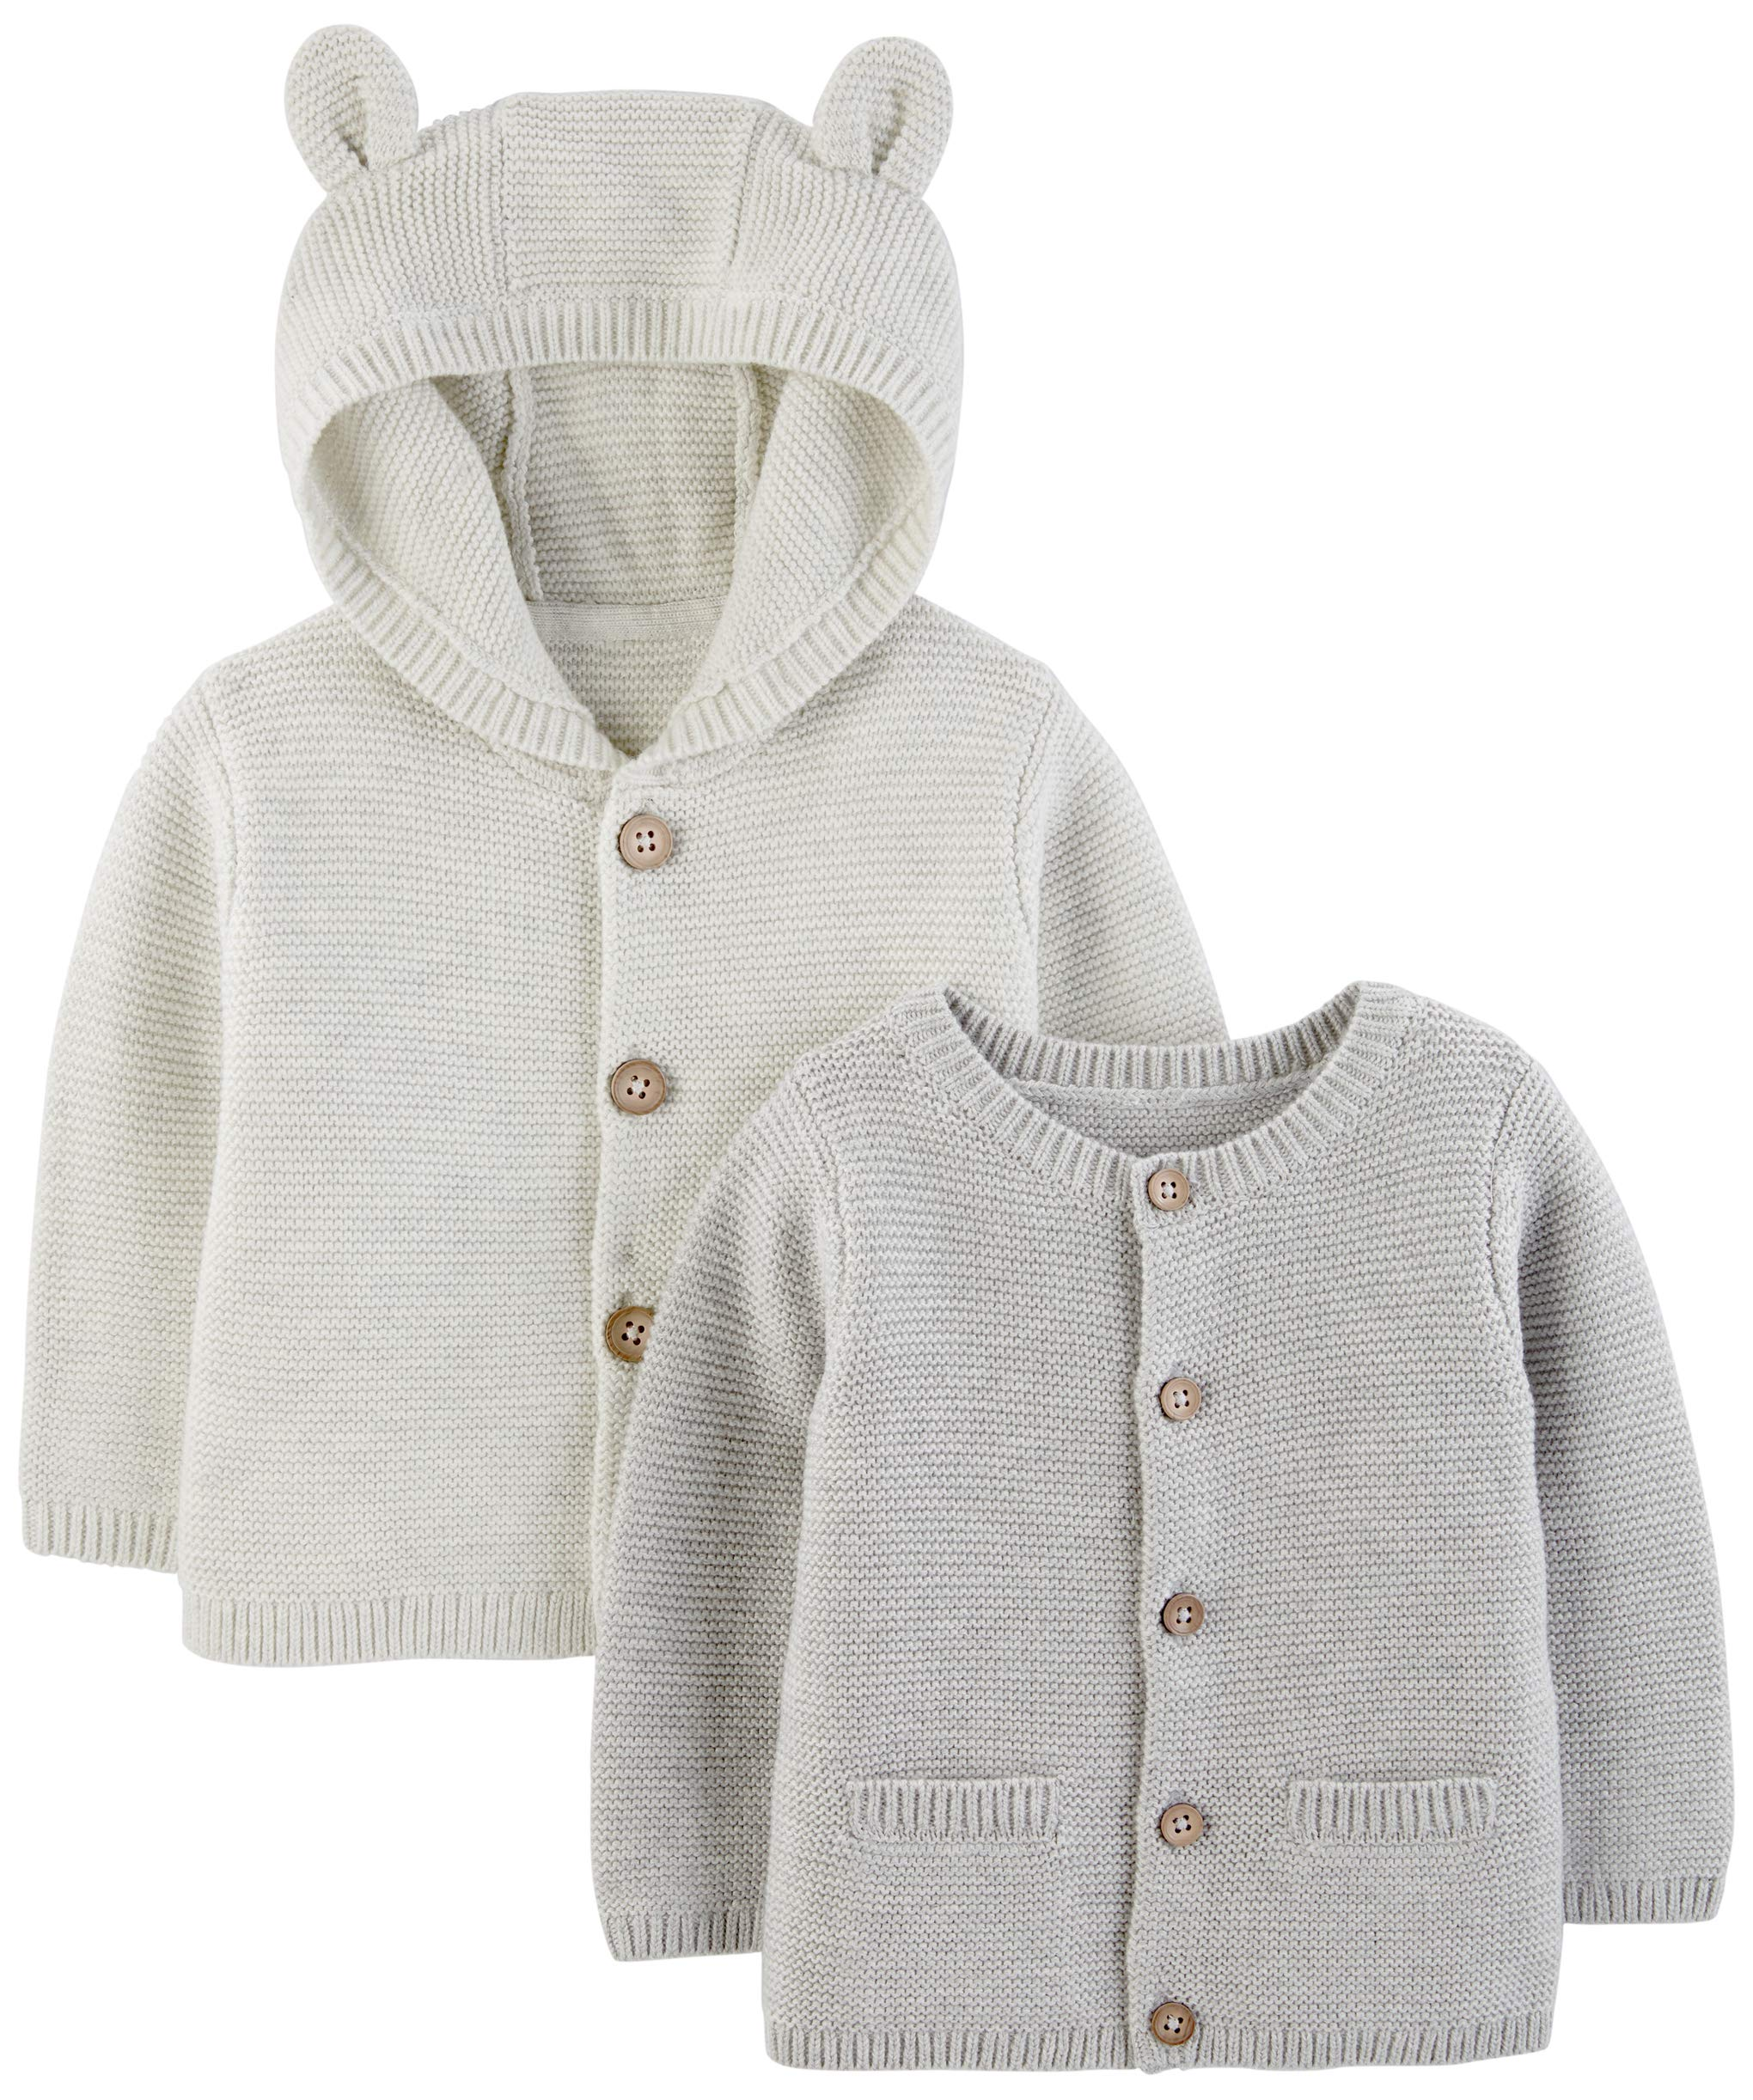 Simple Joys by Carter's Baby 2-Pack Neutral Knit Cardigan Sweaters, Grey, 0-3 Months by Simple Joys by Carter's